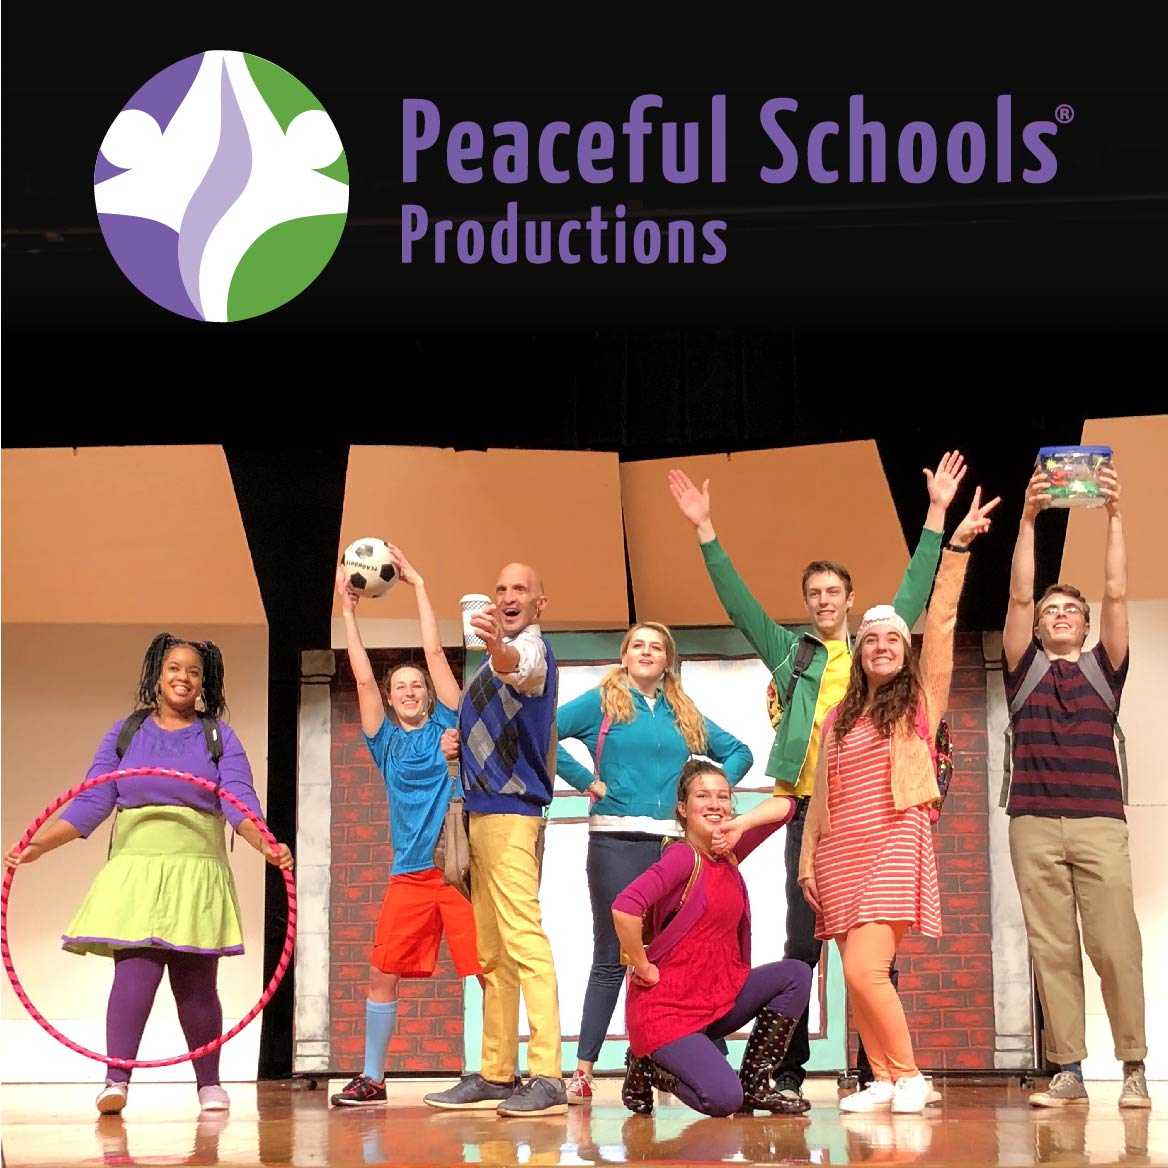 Peaceful Schools Productions